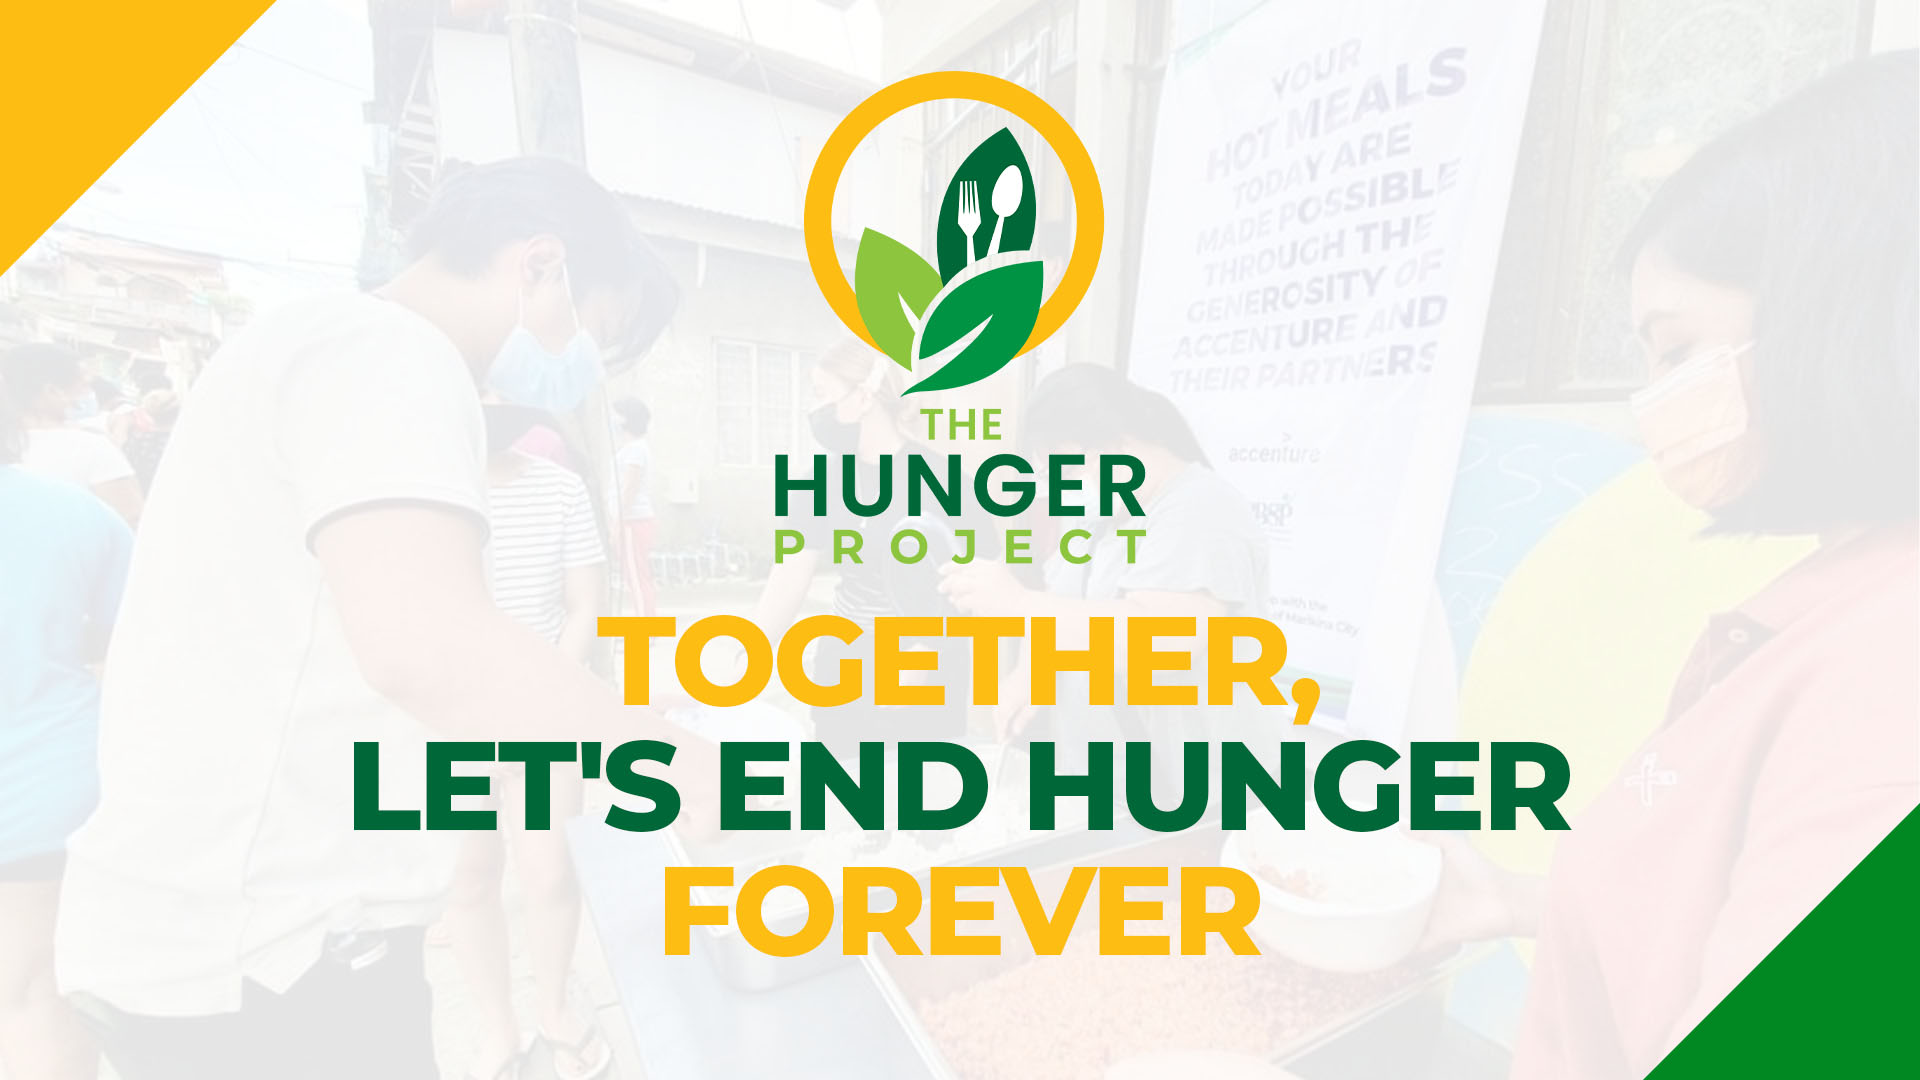 The Hunger Project launched to address hunger and malnutrition